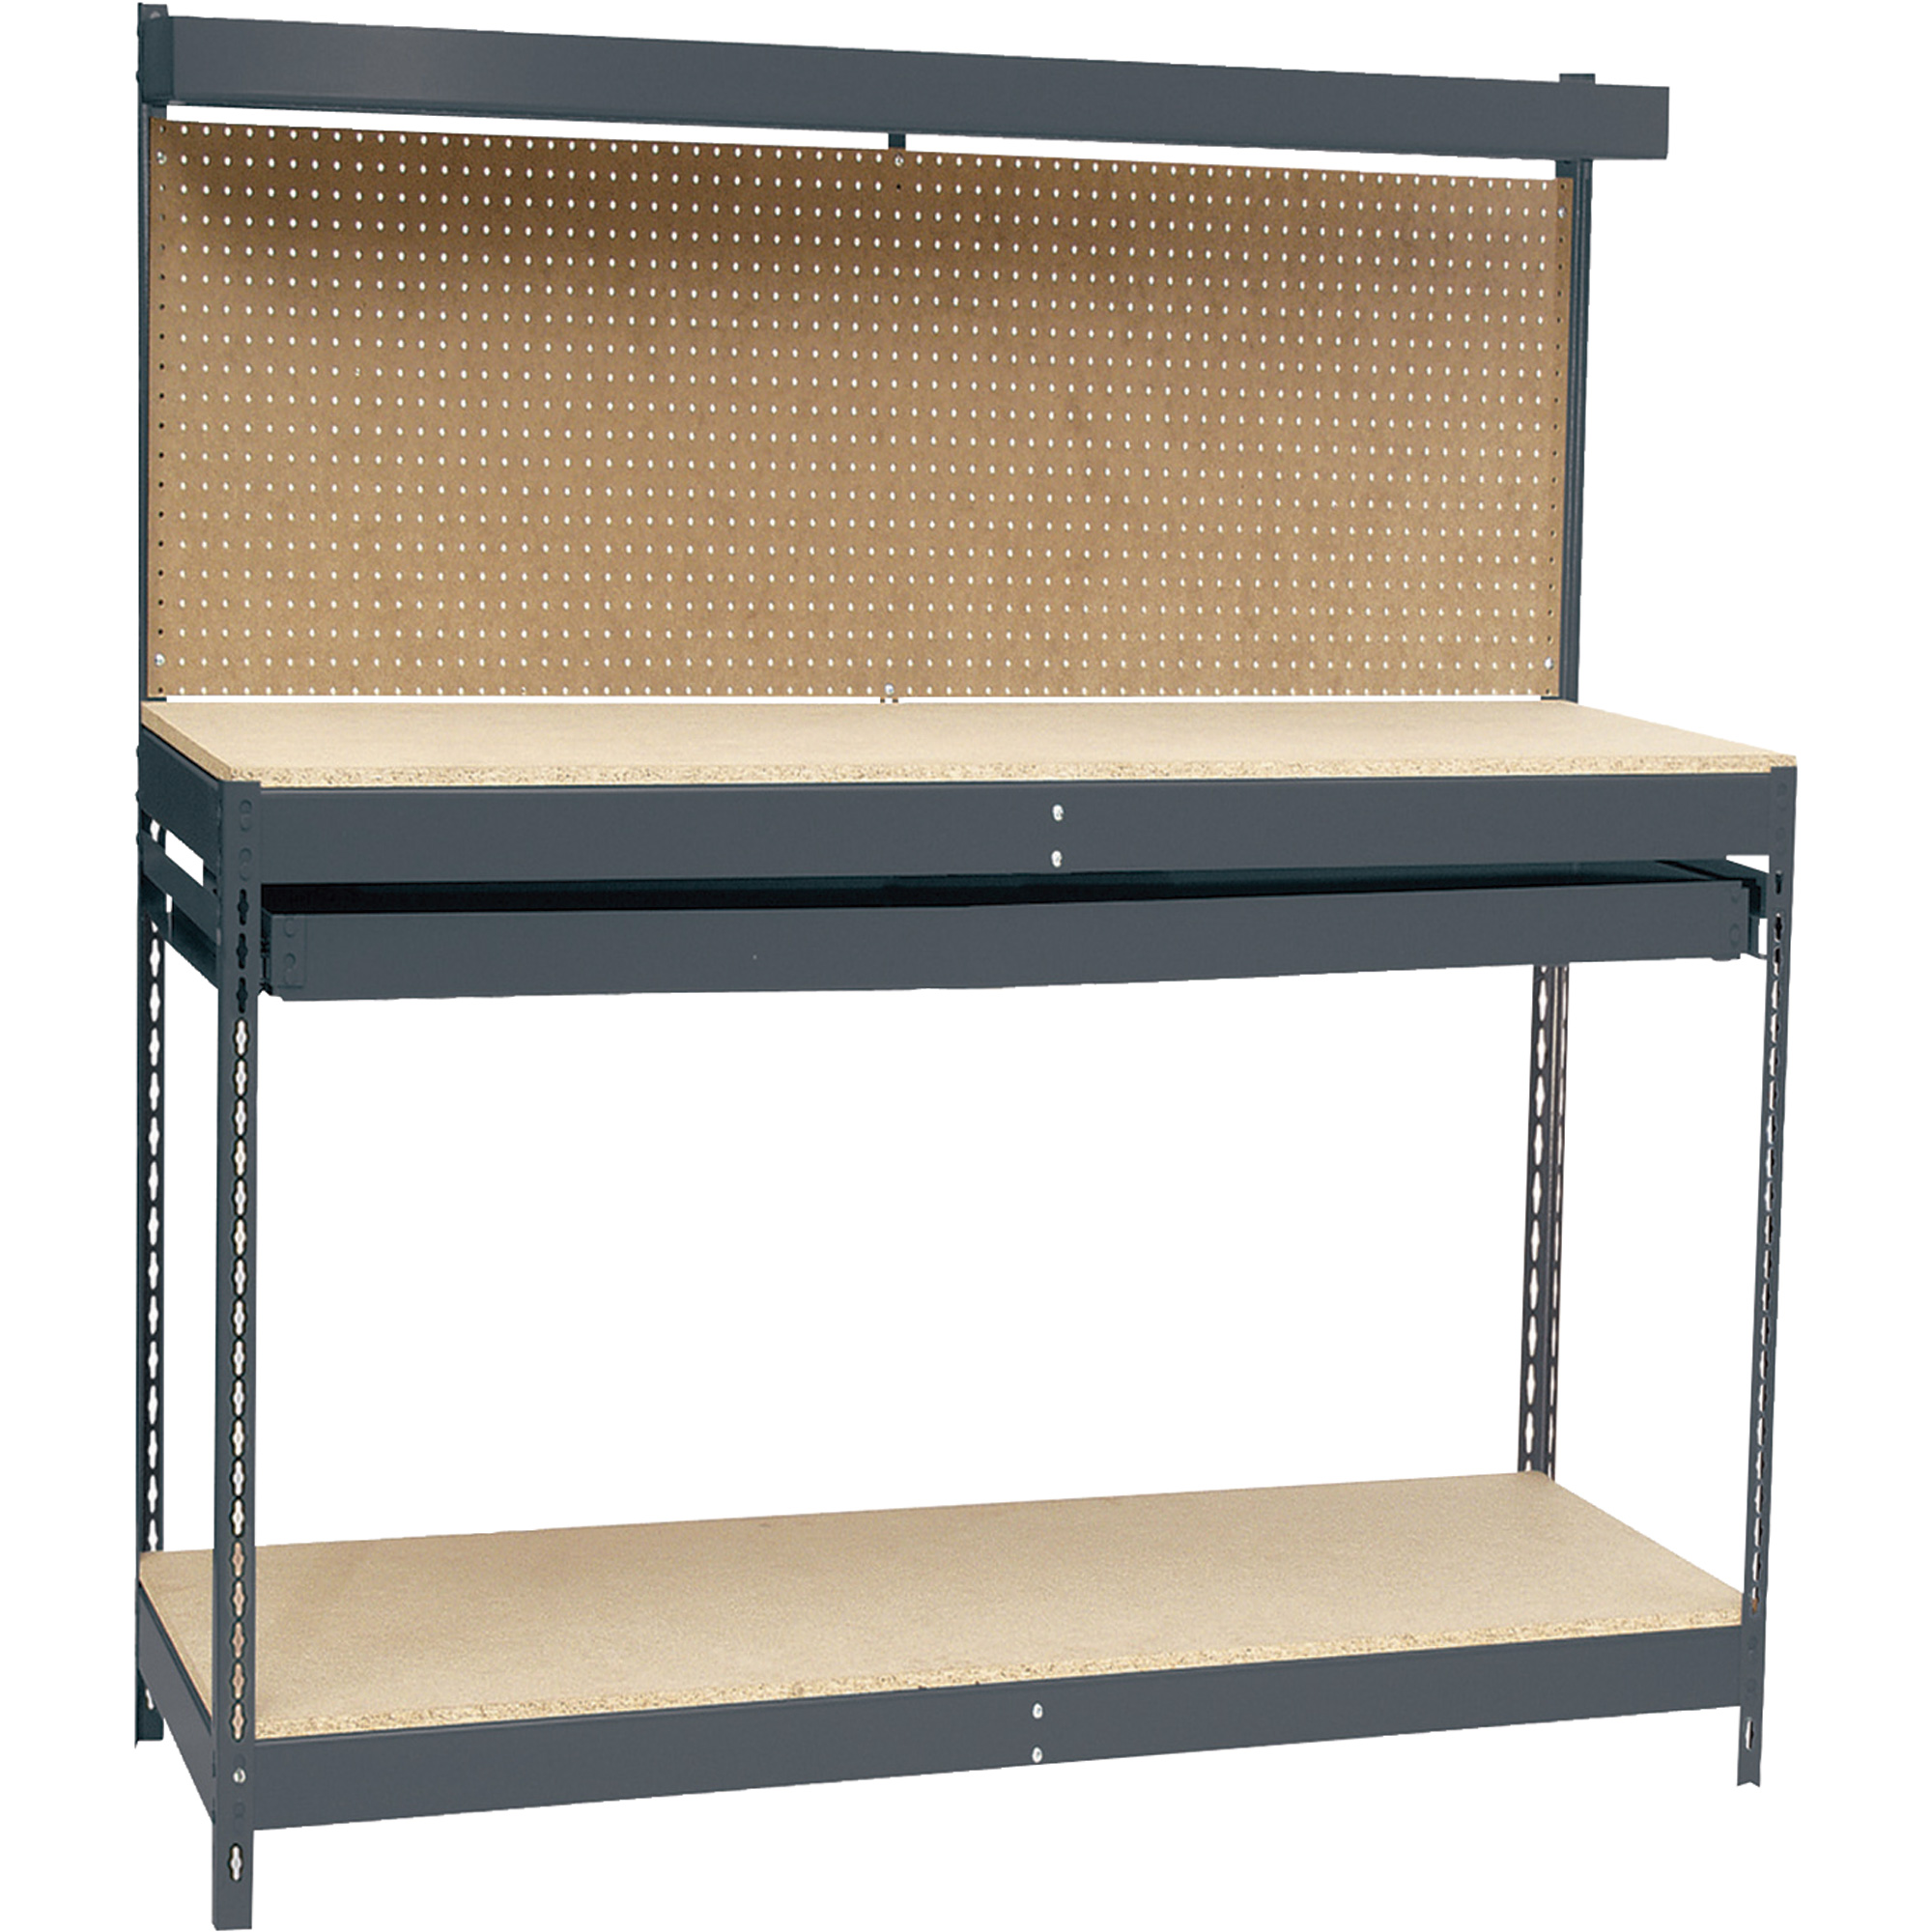 charming steel Edsal Shelving with hutch for garage furniture ideas